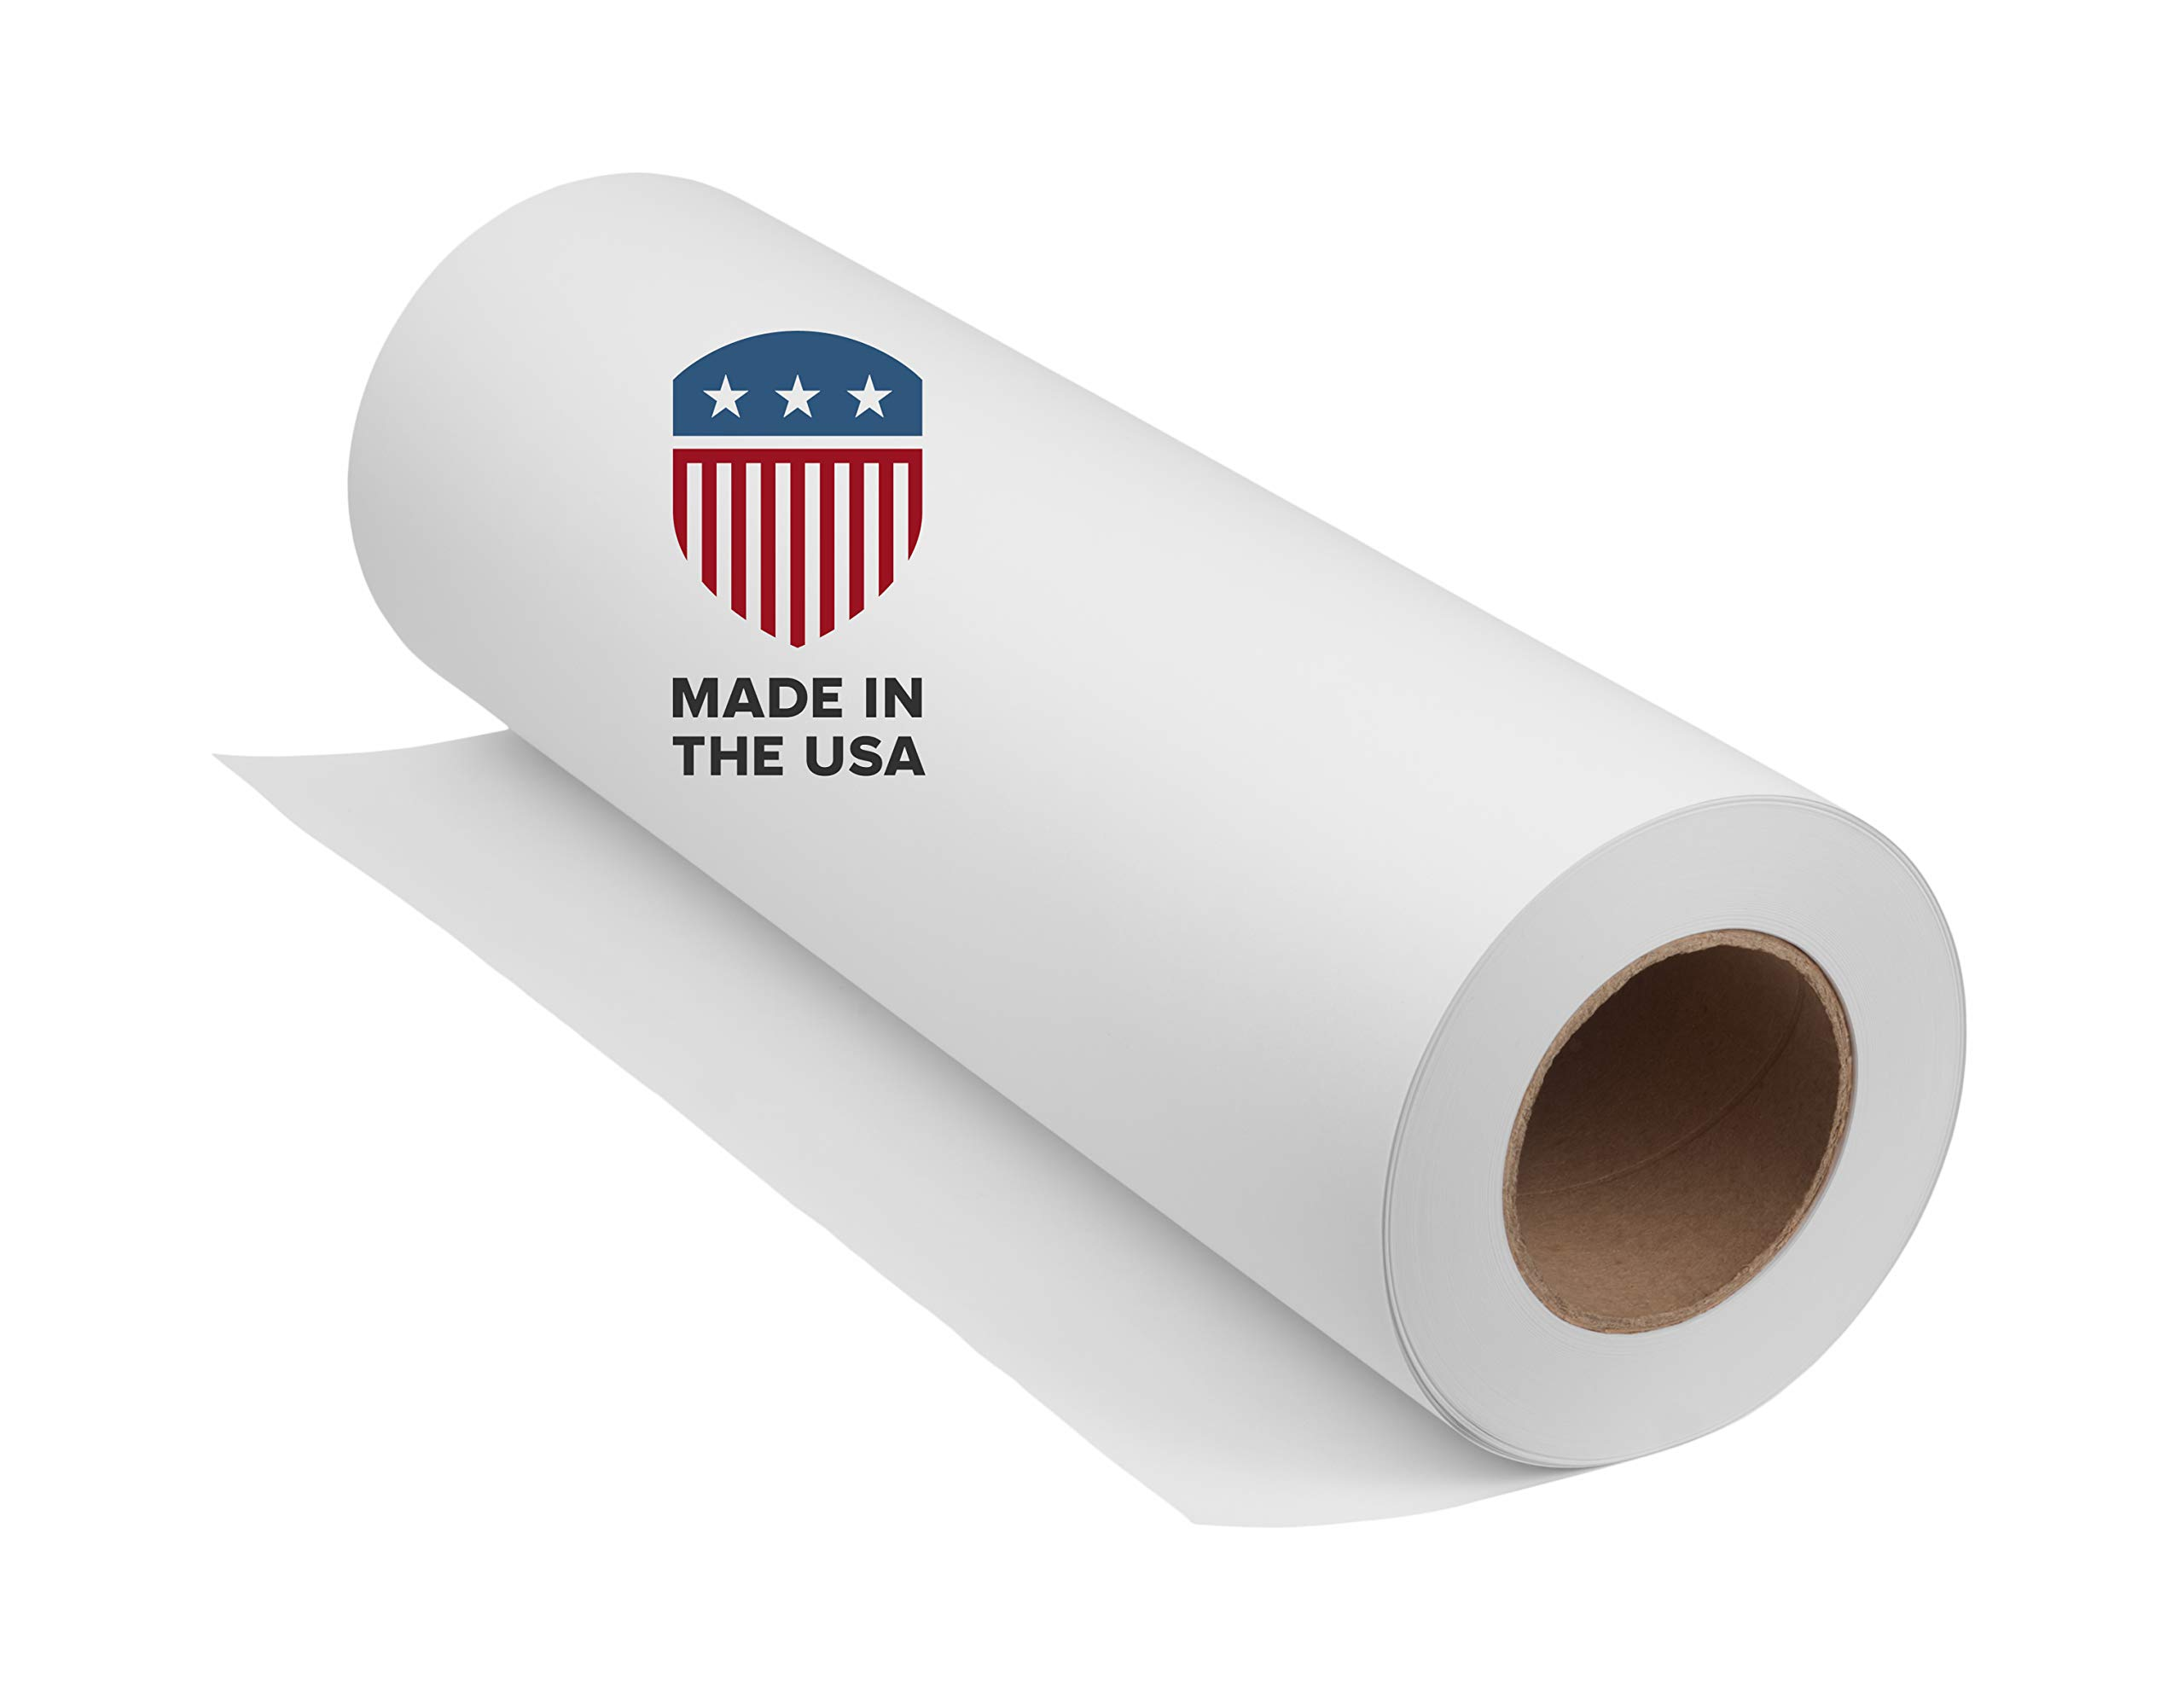 White Butcher Paper Kraft Roll: 36'' x 9720'' (810'), 40lb: USA Made, FDA Approved